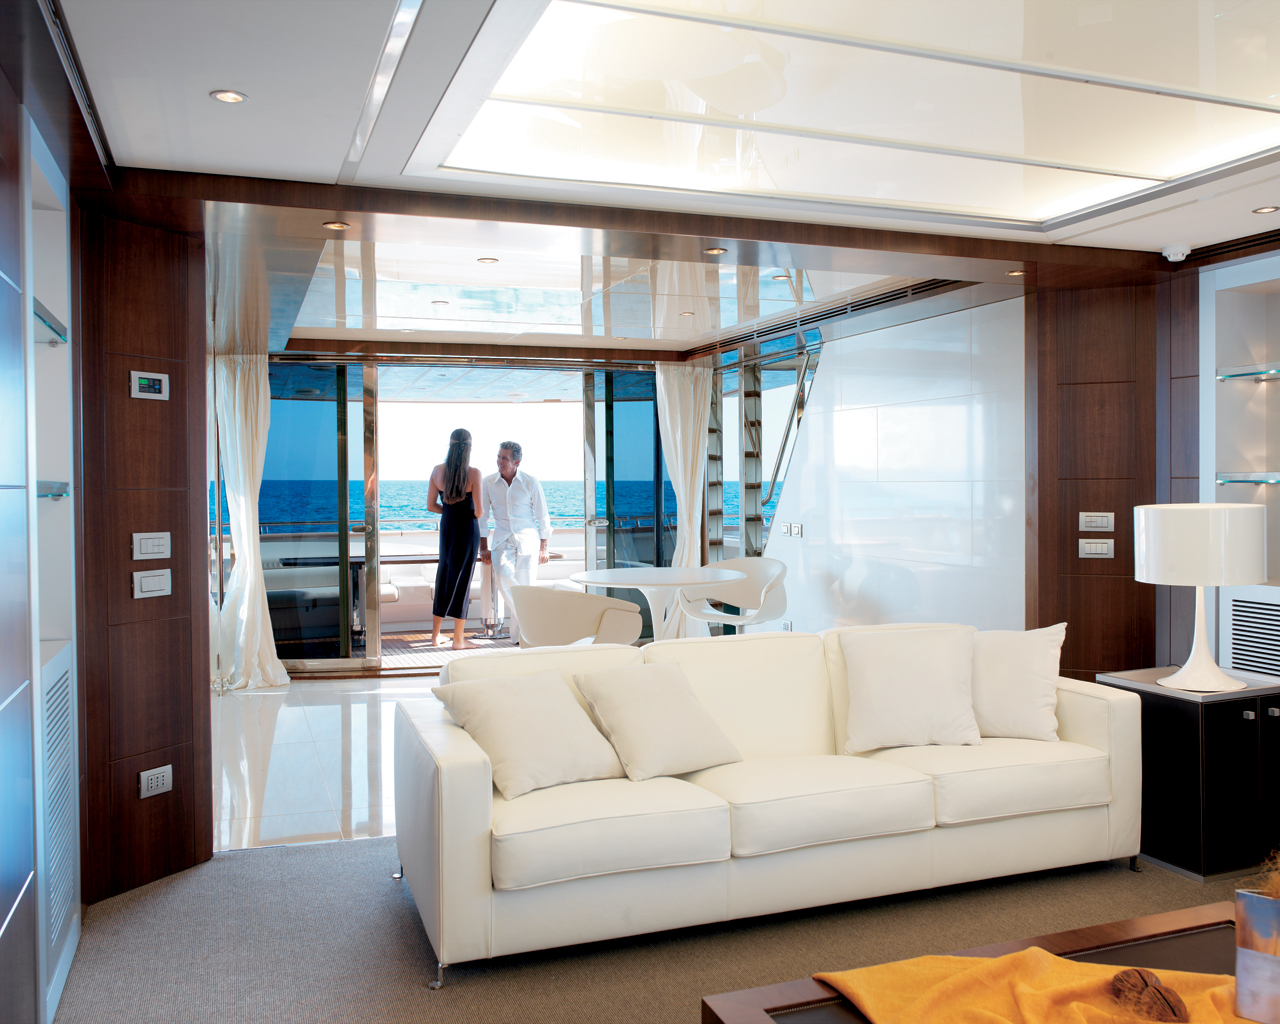 Yacht interior decoration interior design ideas for Yacht interior design decoration